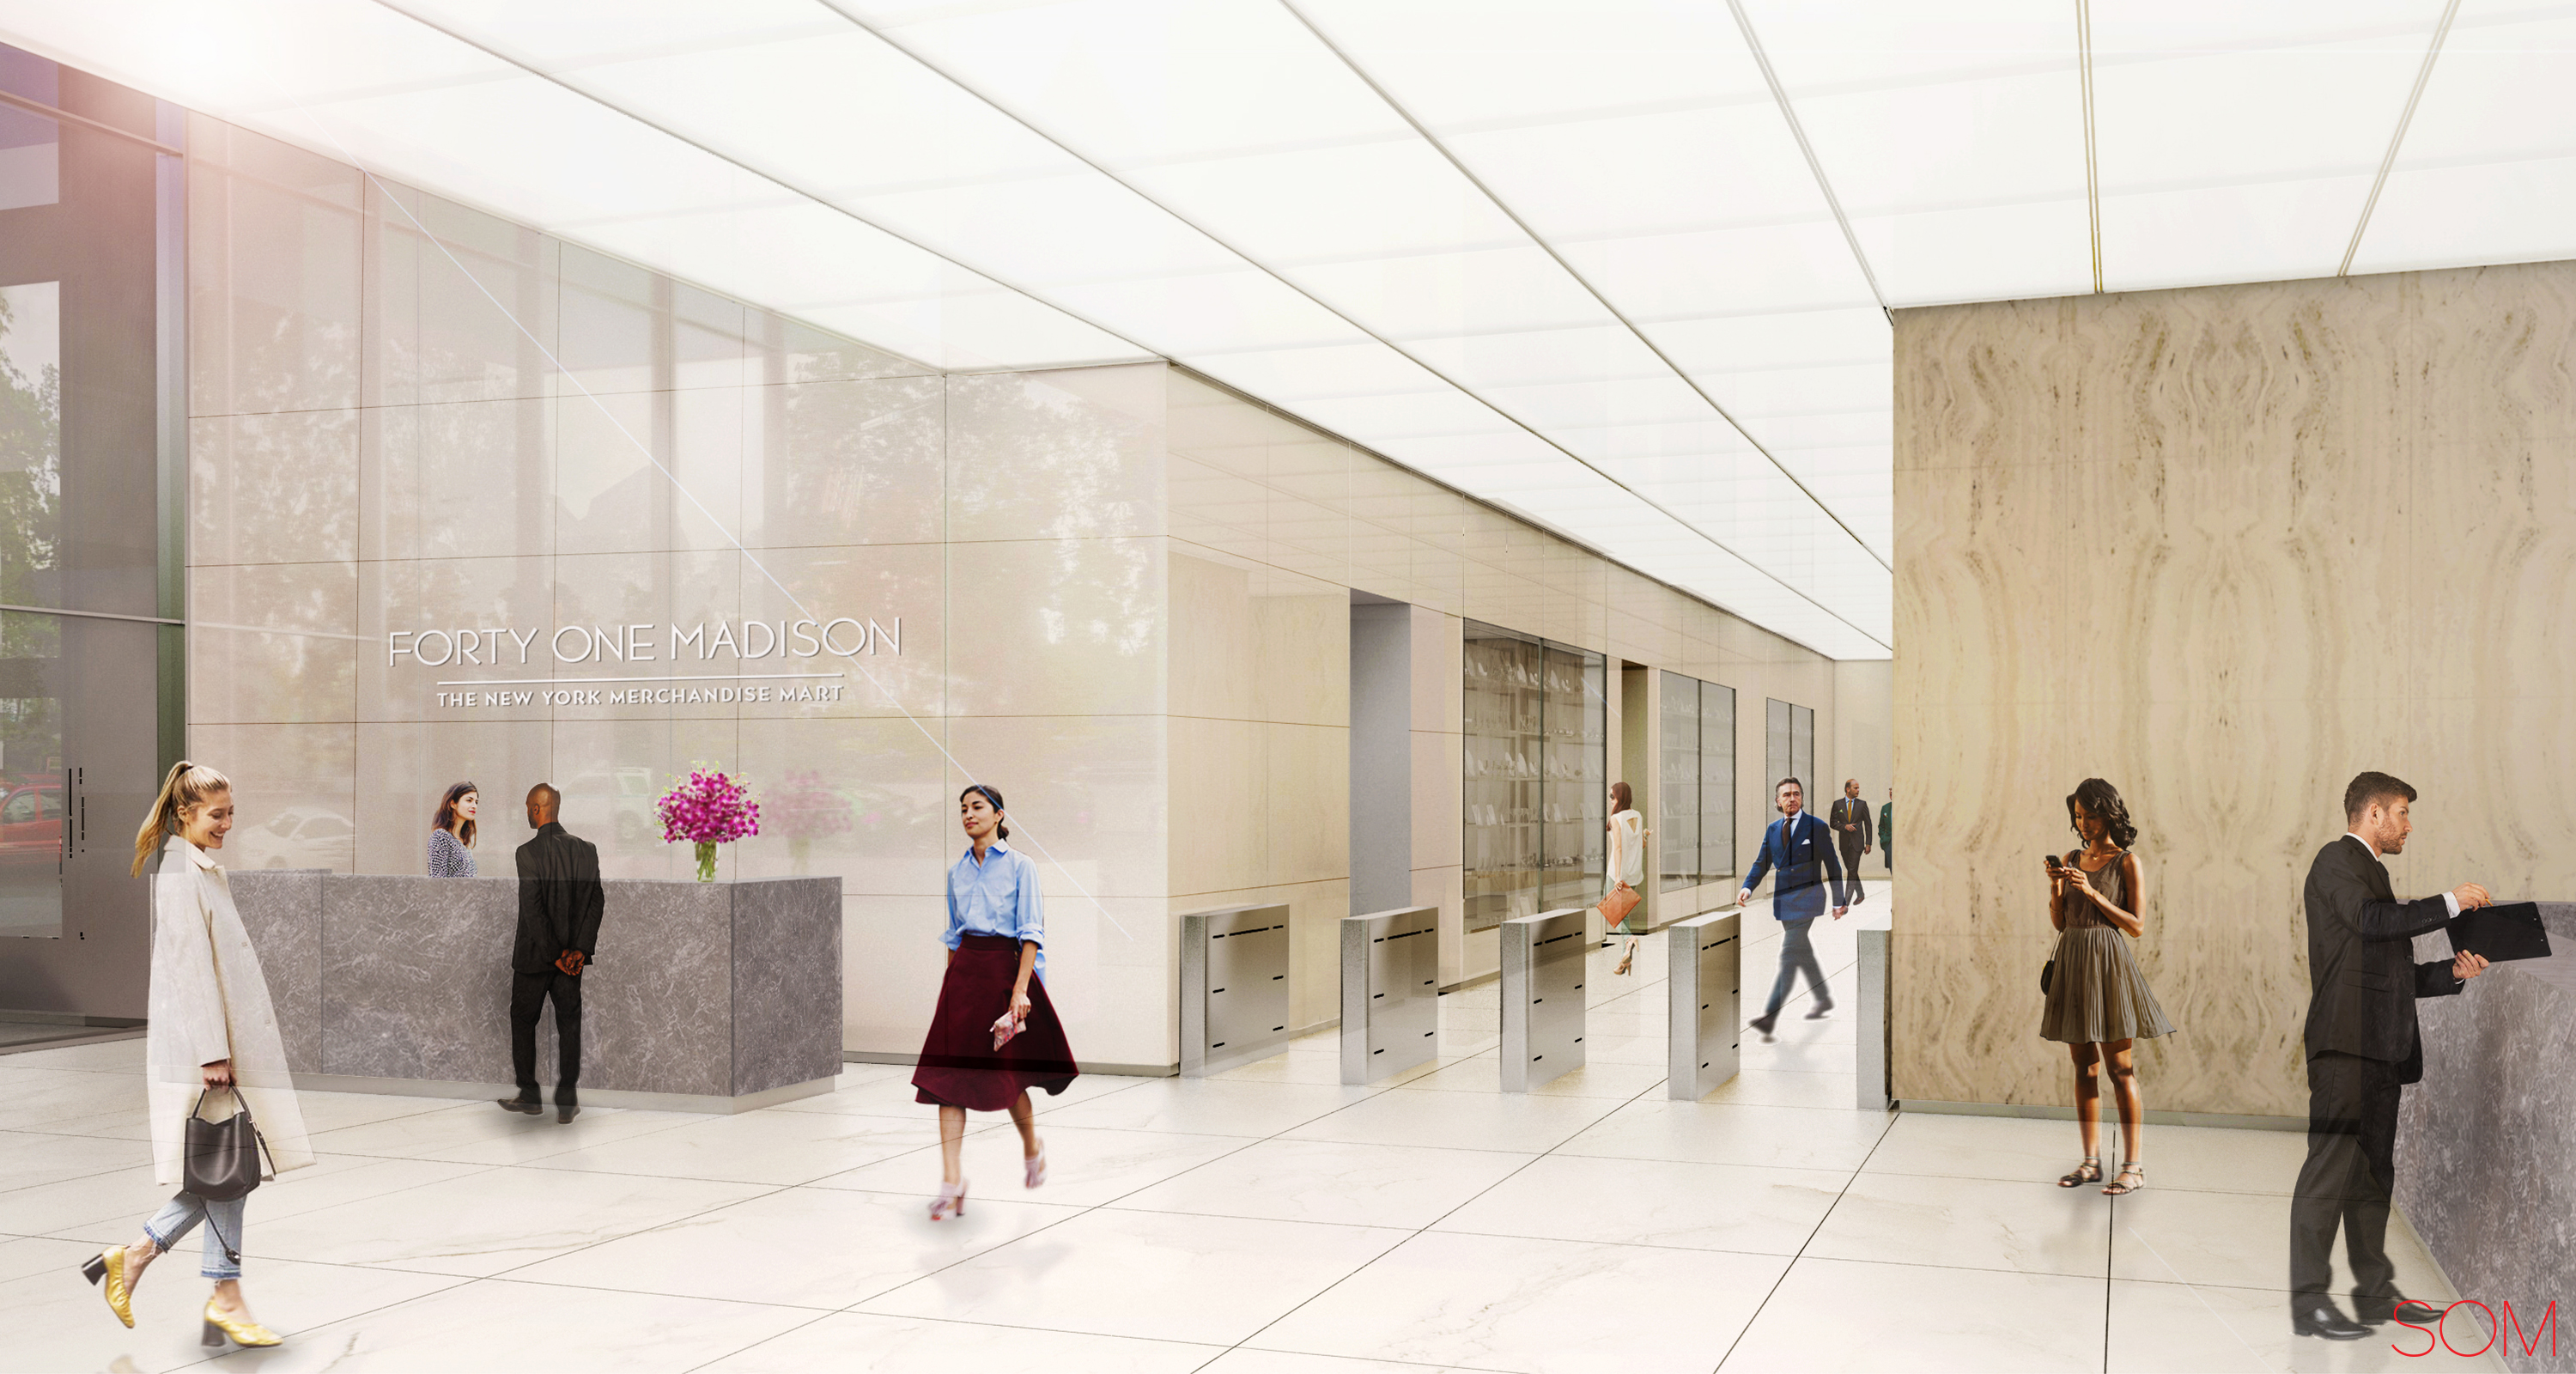 Rendering of lobby hallway at 41 Madison Avenue. Credit: Rudin/SOM.